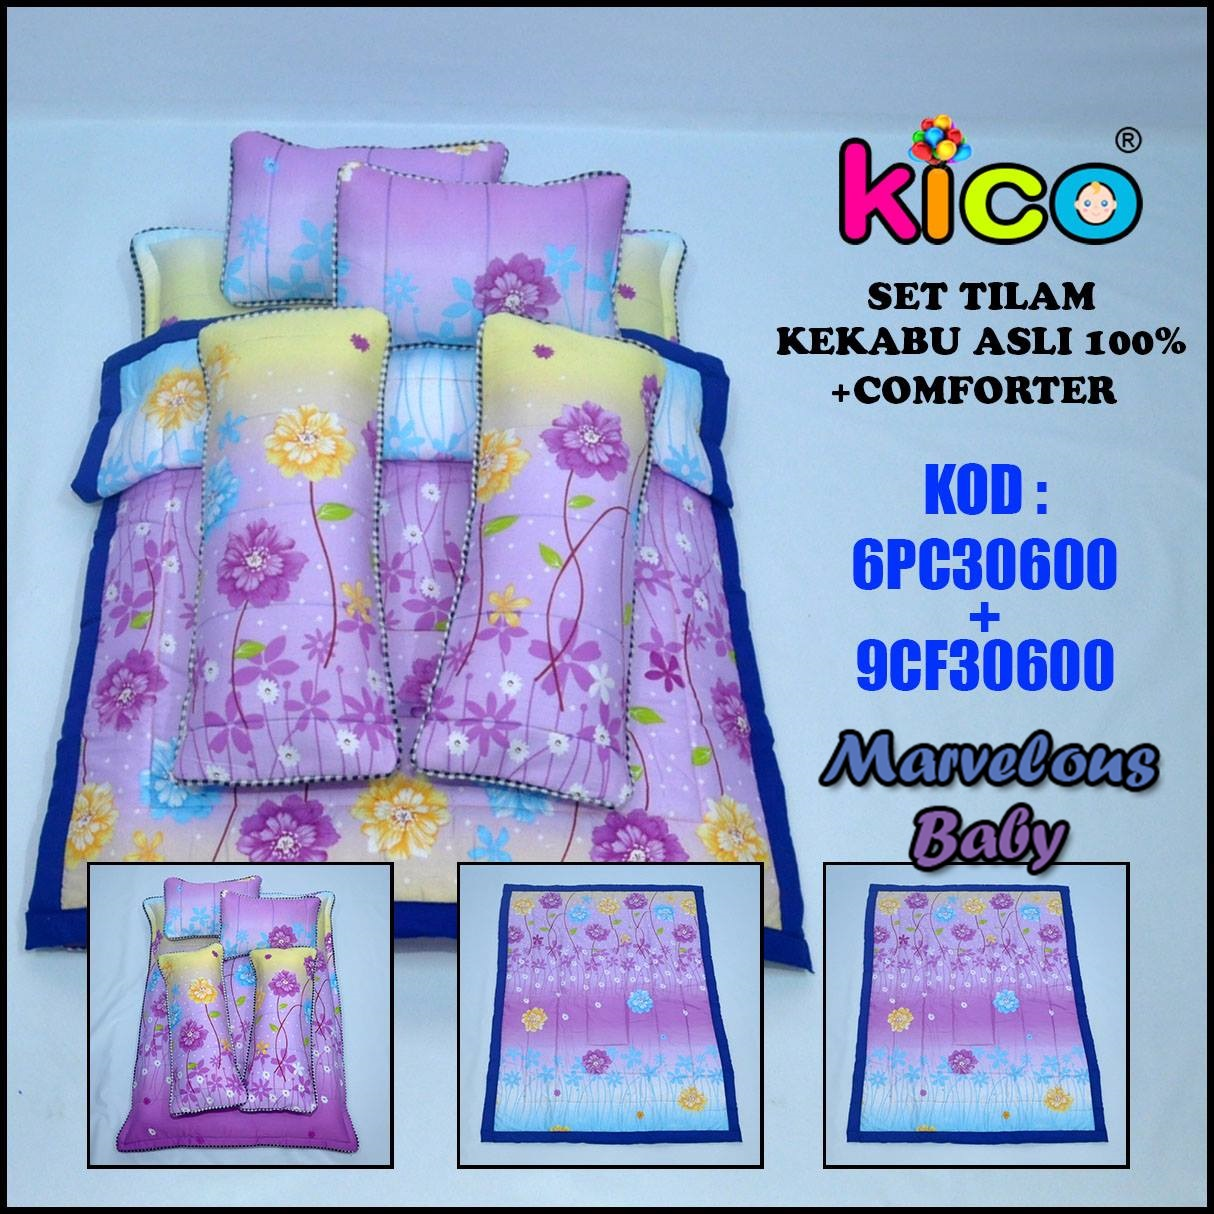 SWEET PURPLE - TILAM KEKABU ASLI 100% (6PC30600 + 9CF30600)